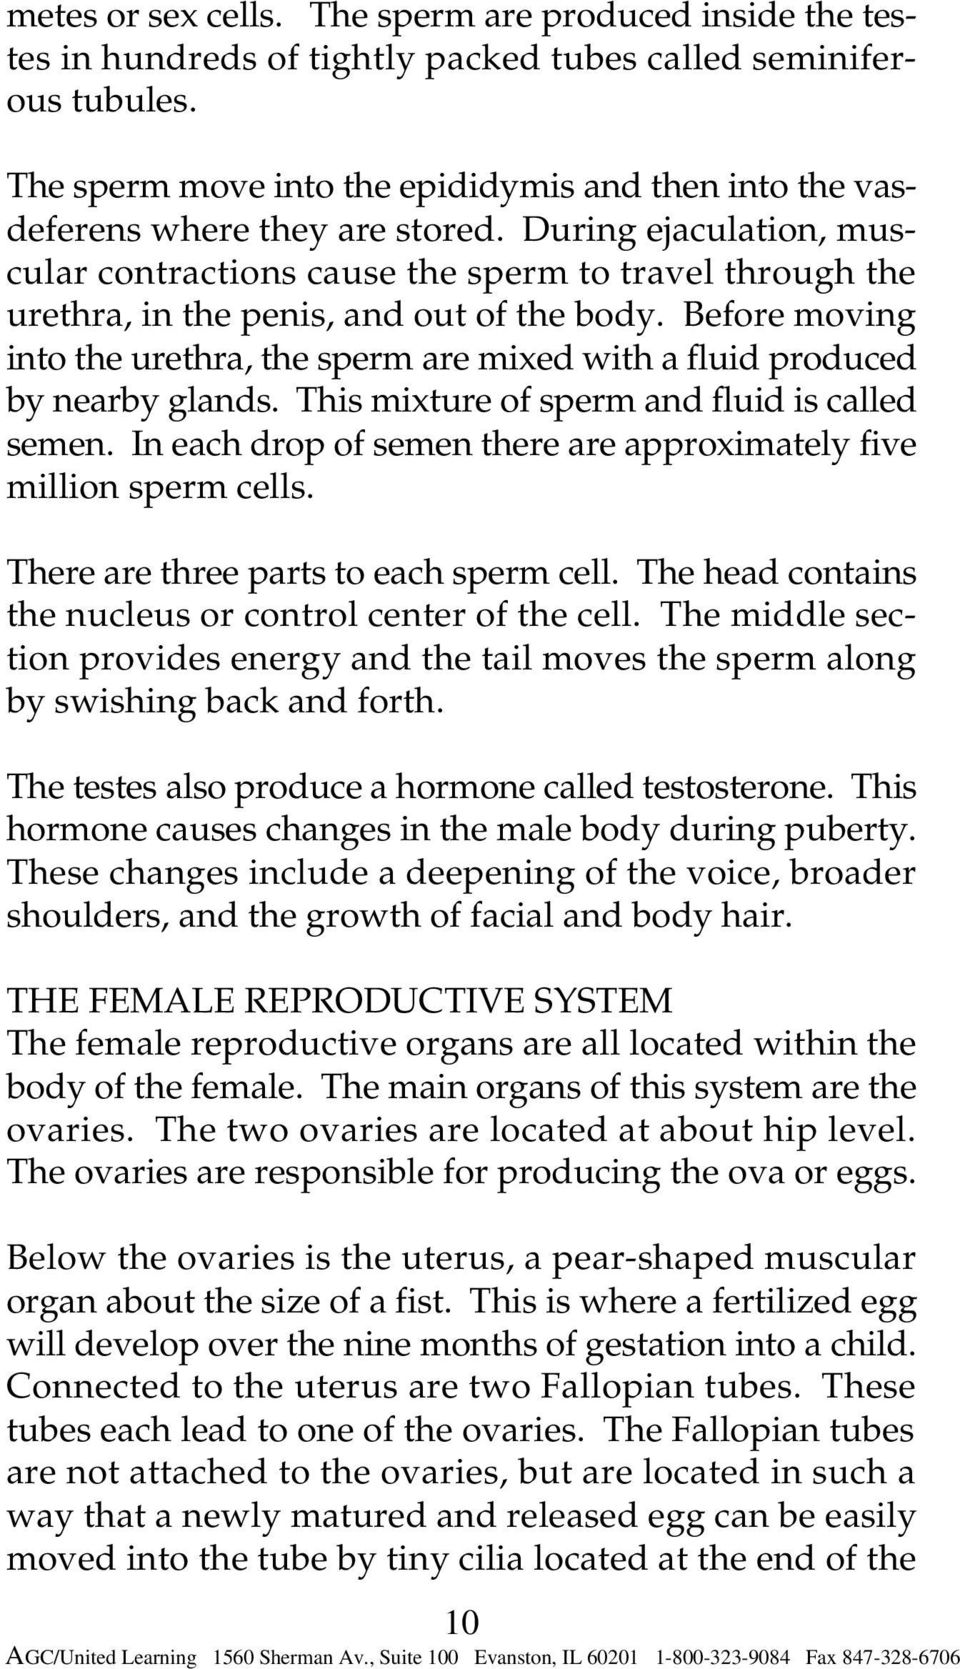 During ejaculation, muscular contractions cause the sperm to travel through the urethra, in the penis, and out of the body.